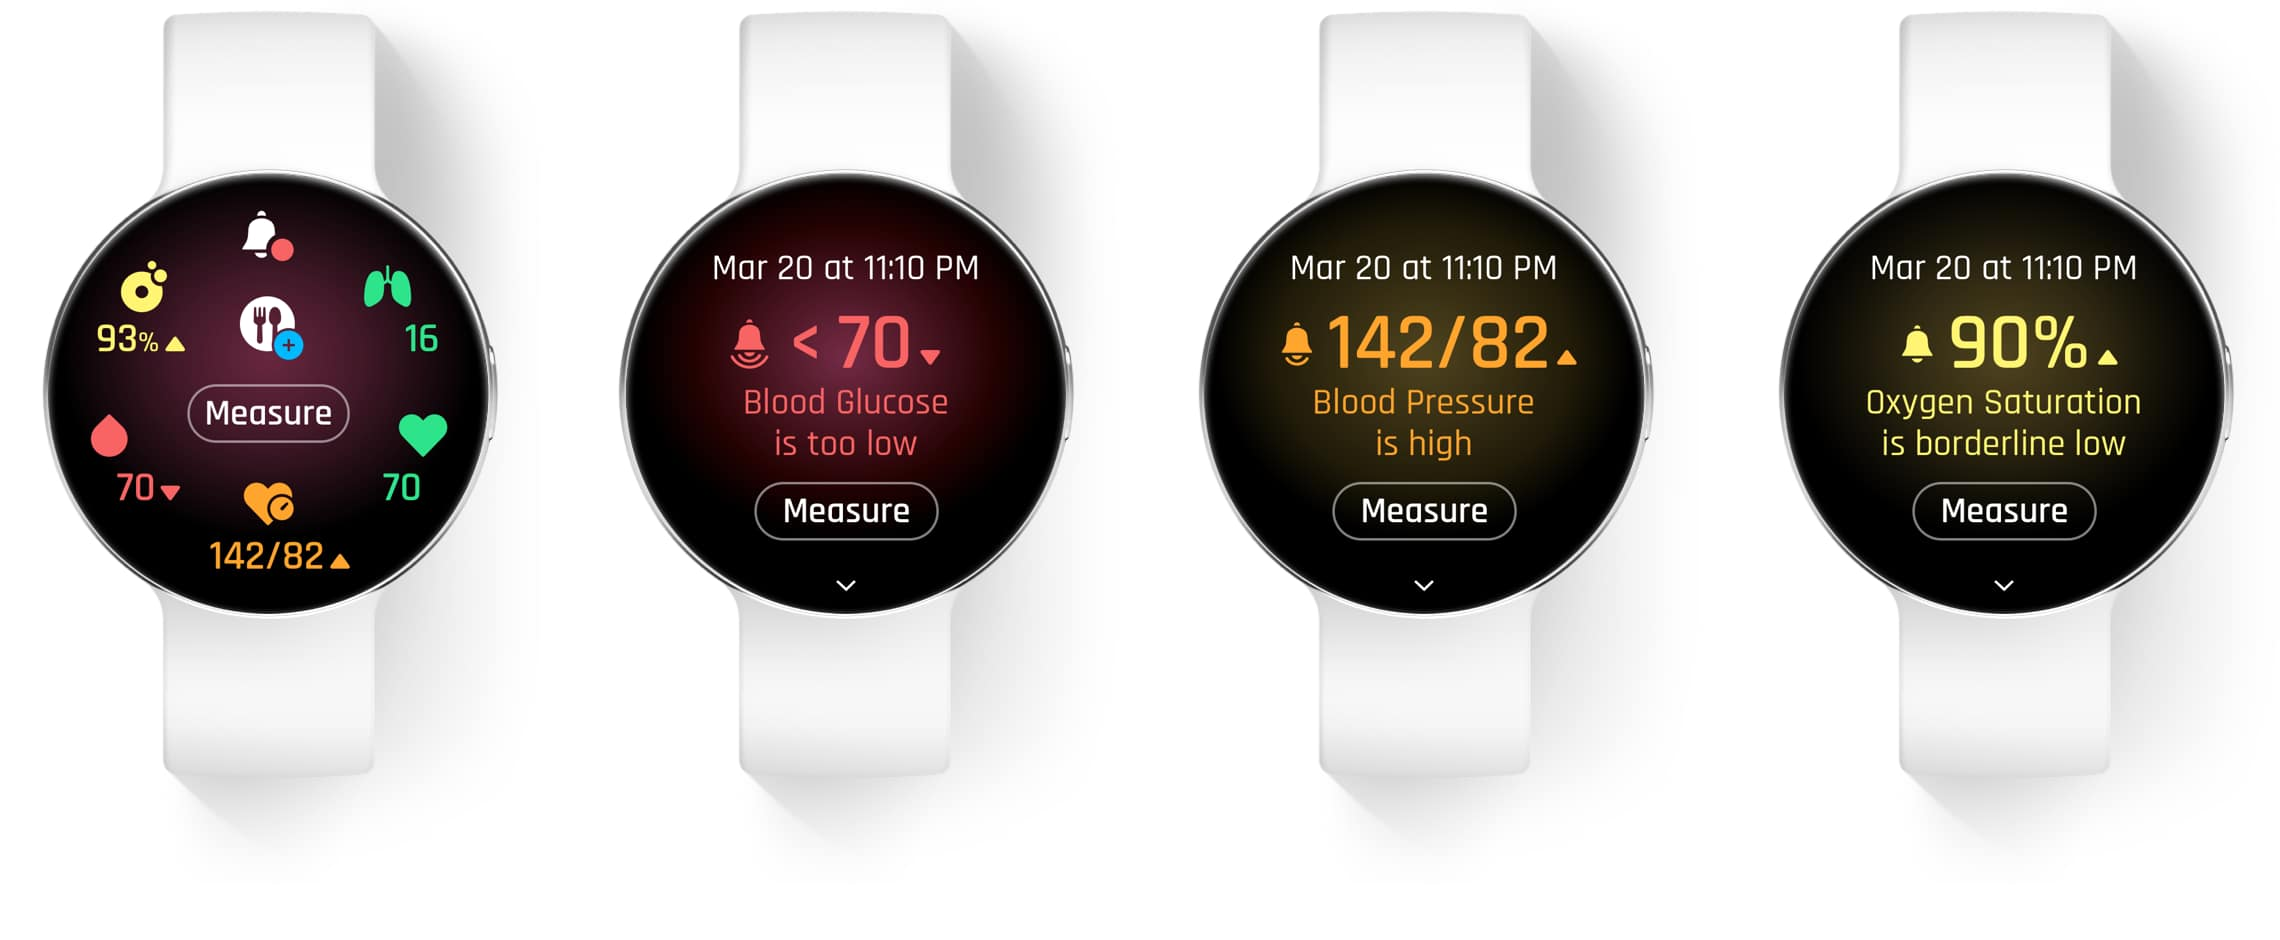 Series of screen designs showing user flow for measuring vital signs (blood glucose, blood pressure, and oxygen saturation)